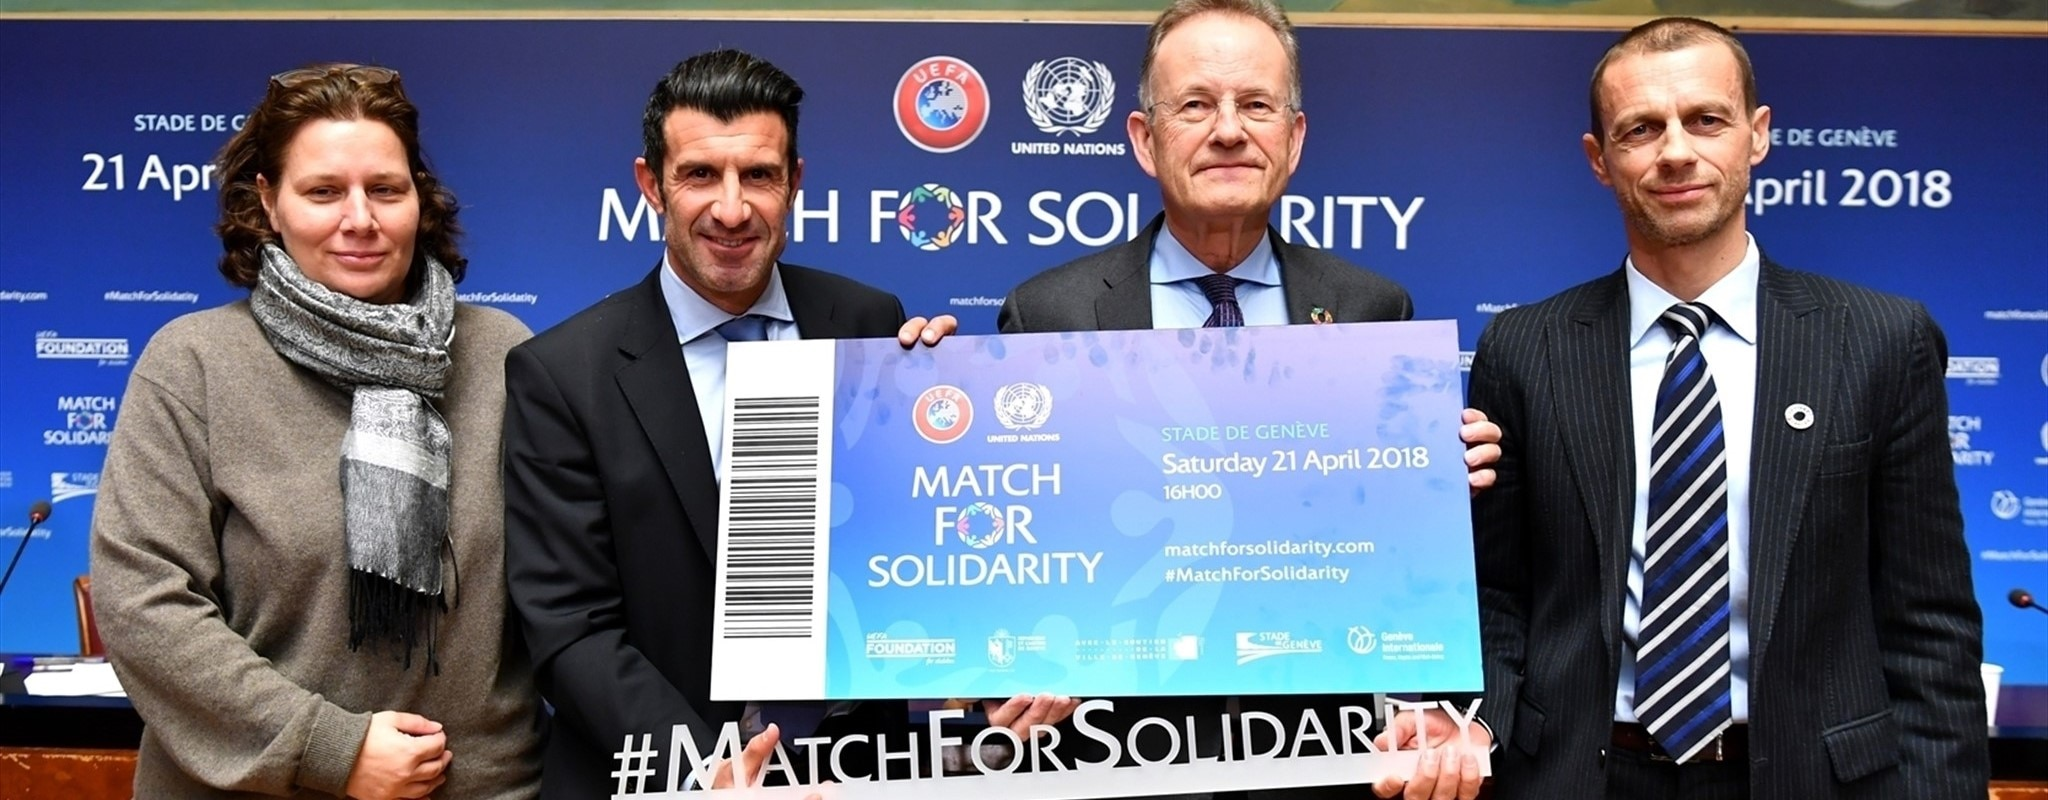 Tickets go on sale for Match For Solidarity in Geneva